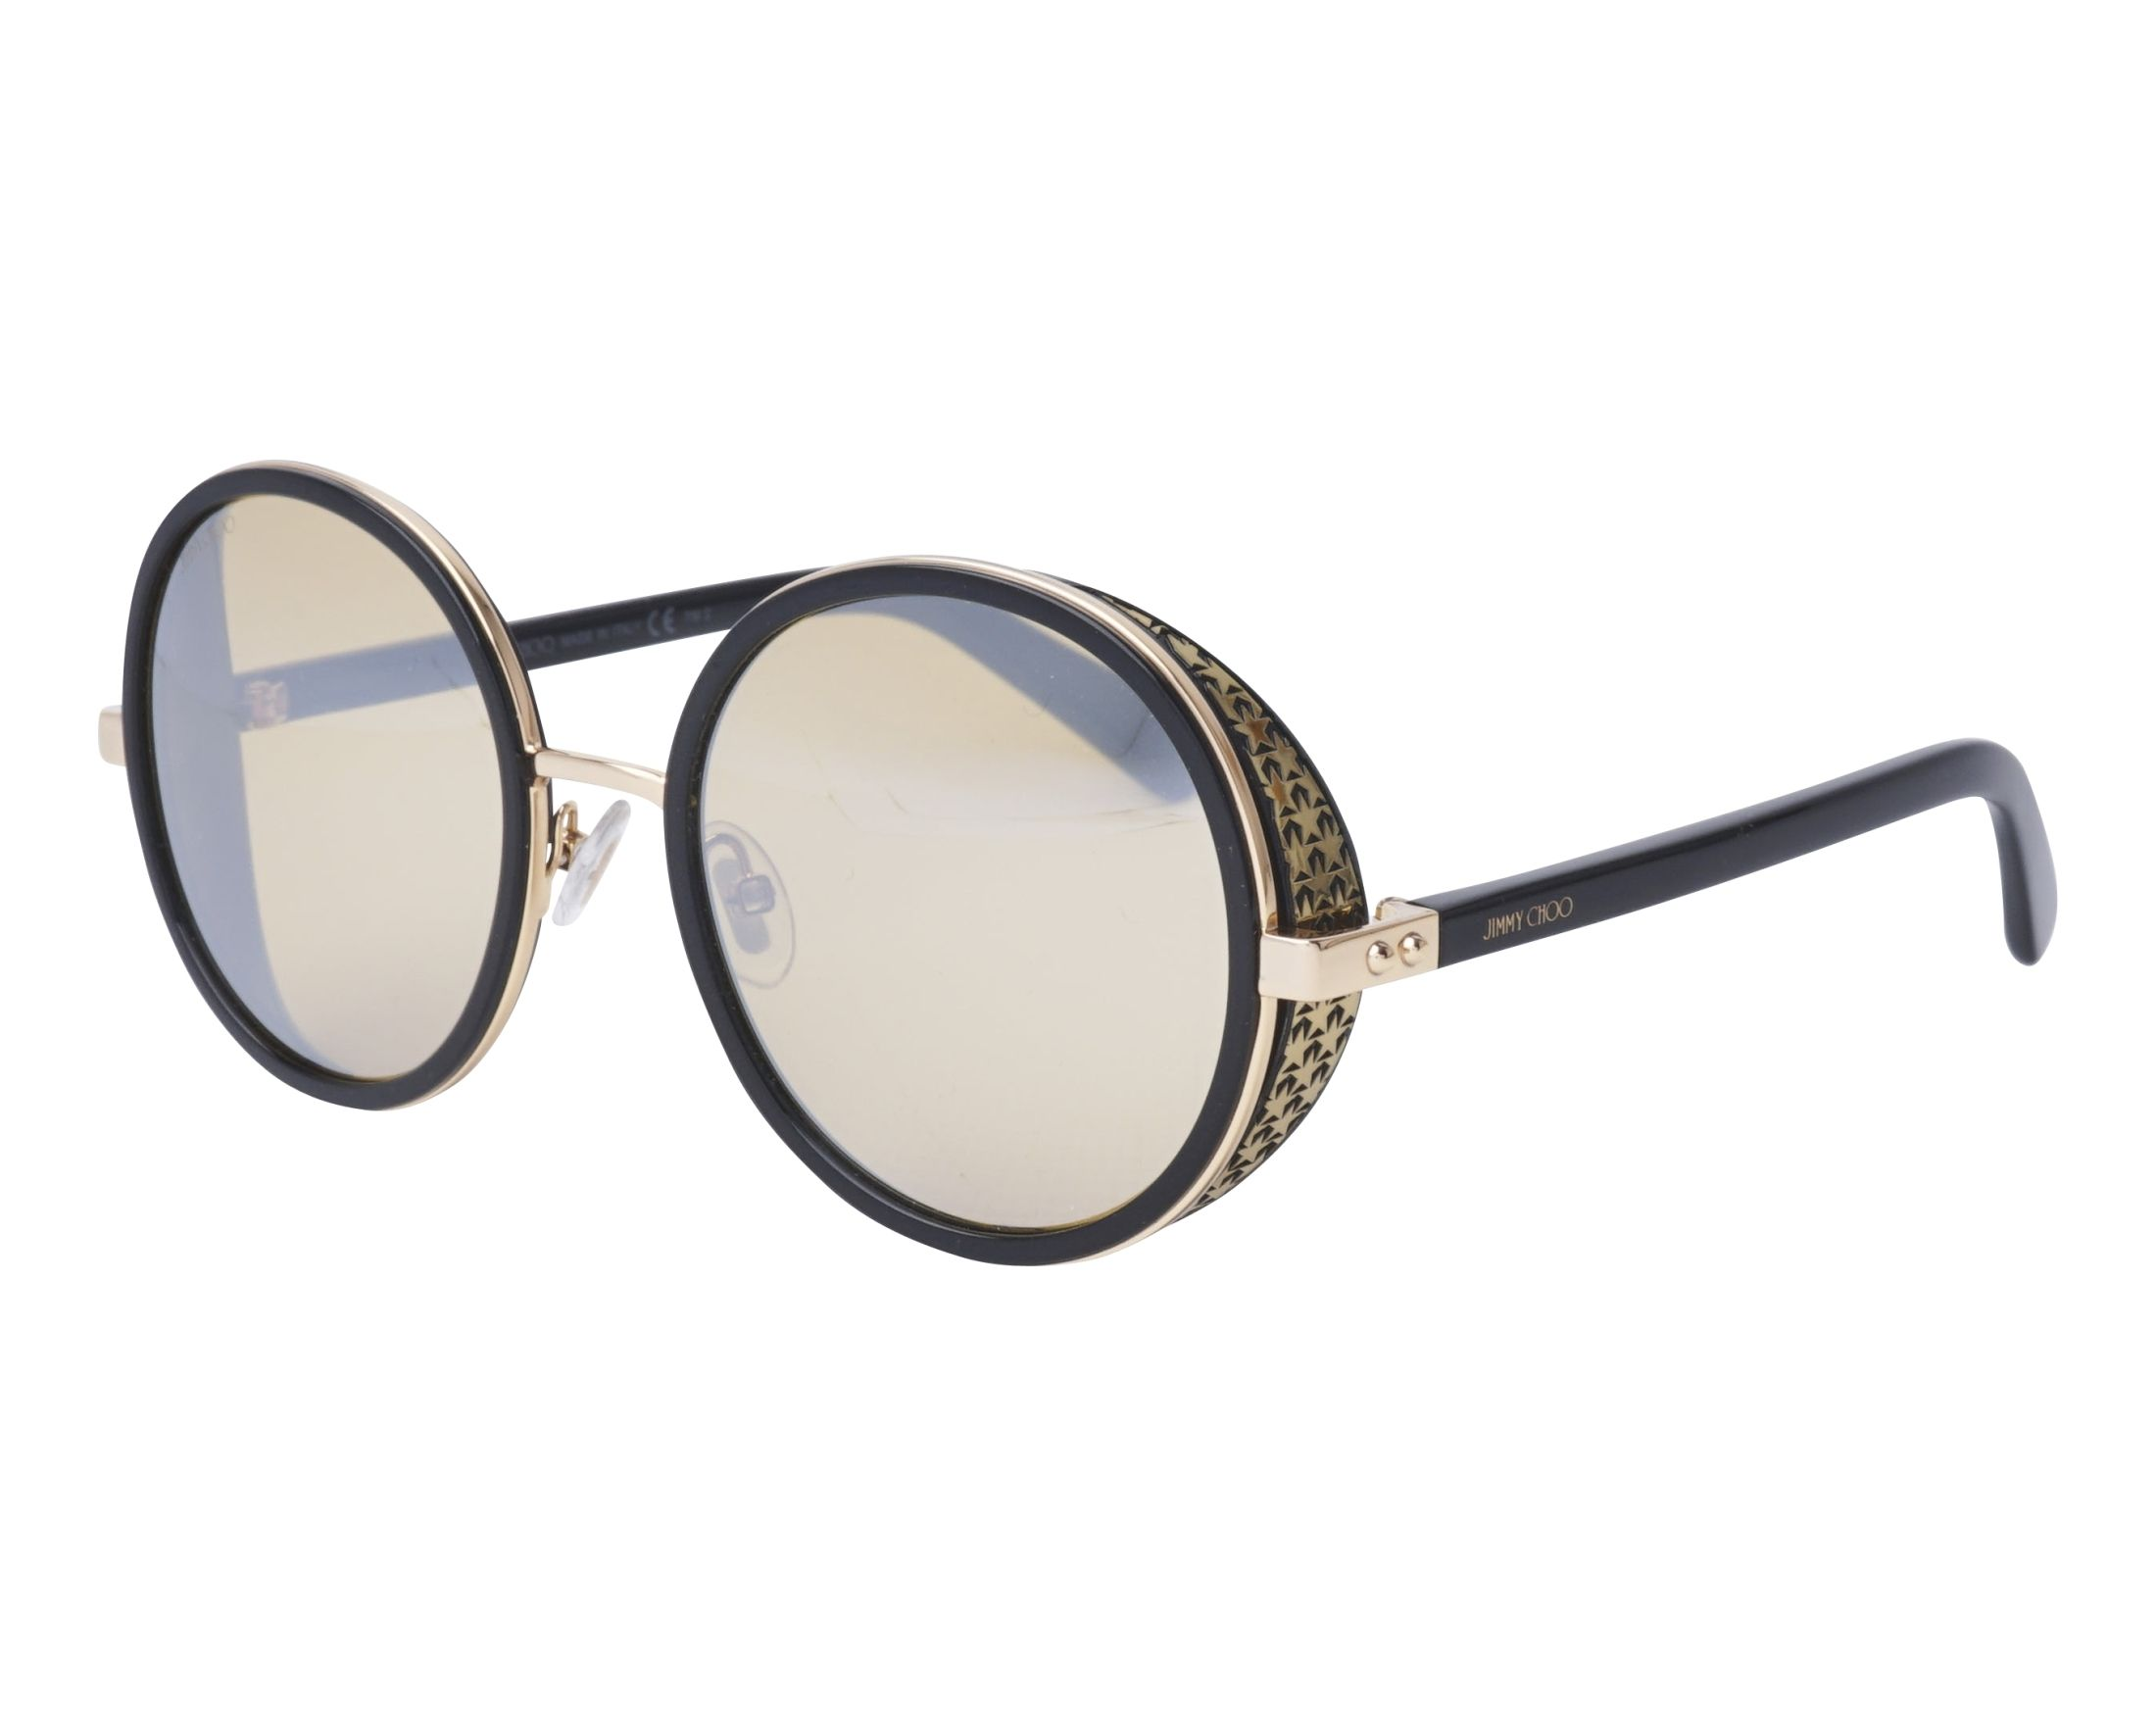 ee492f3163af Sunglasses Jimmy Choo ANDIE-N-S 2M2/T4 54-21 Black Gold profile view